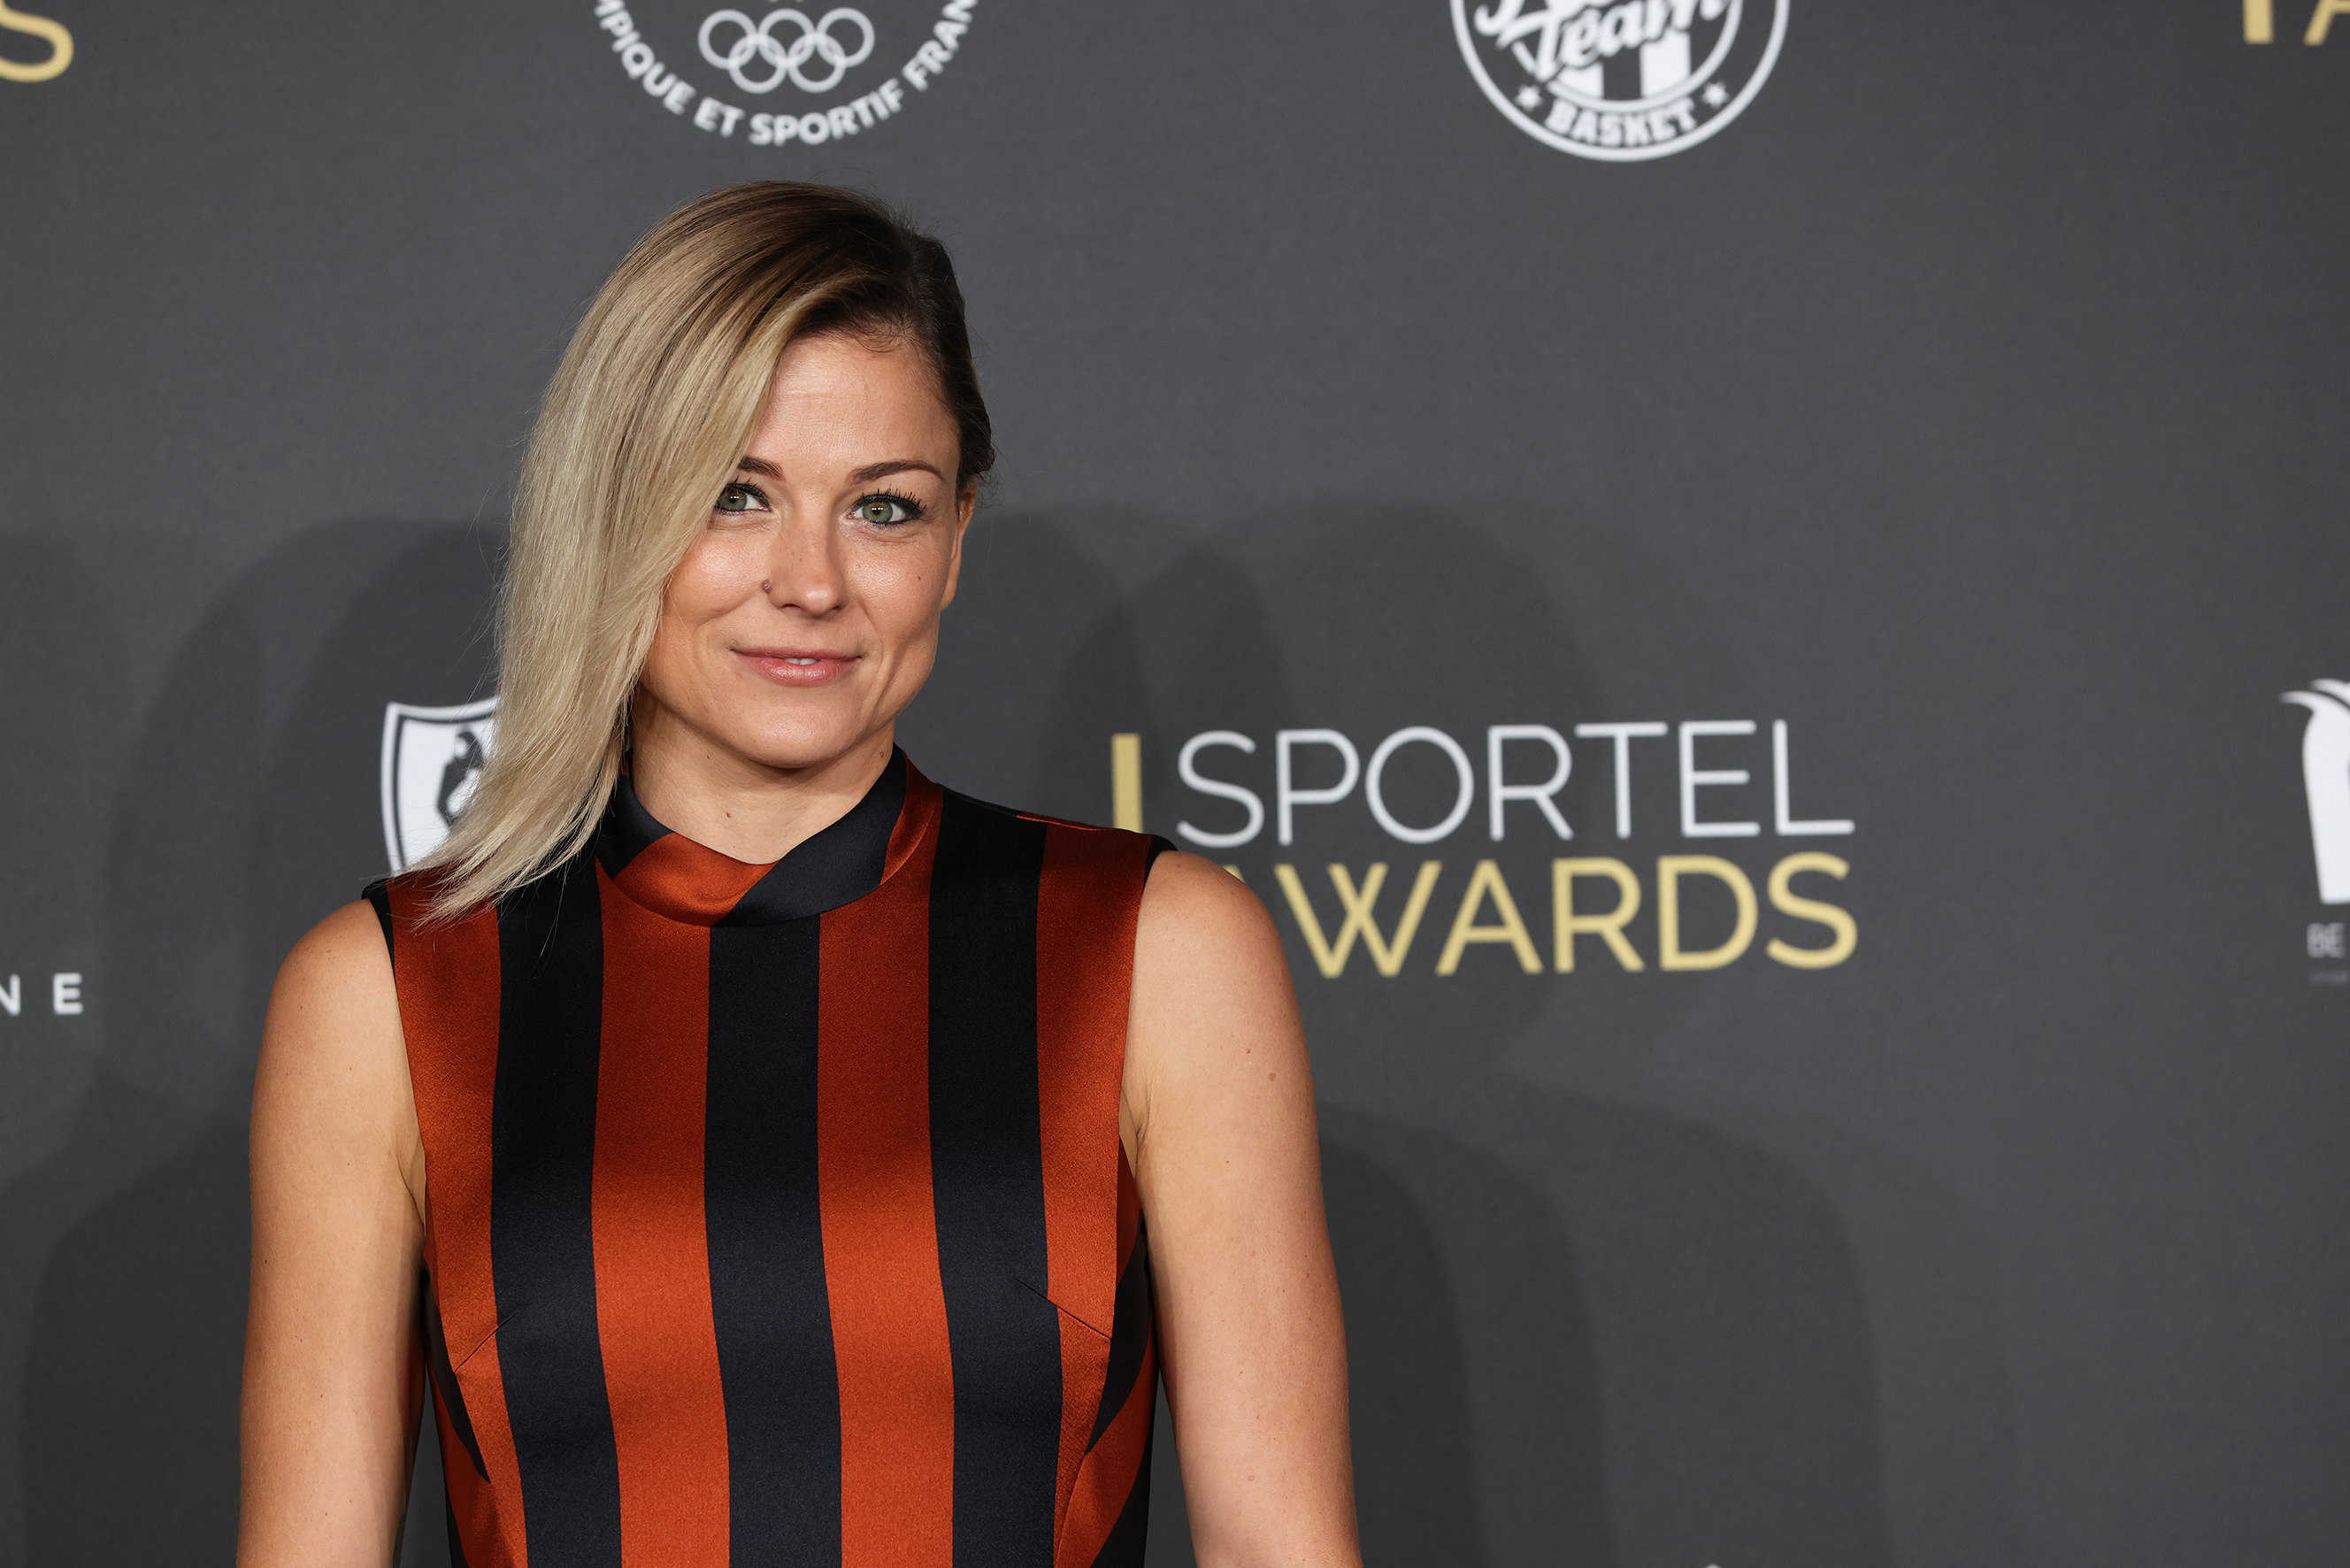 SPORTEL AWARDS 2020